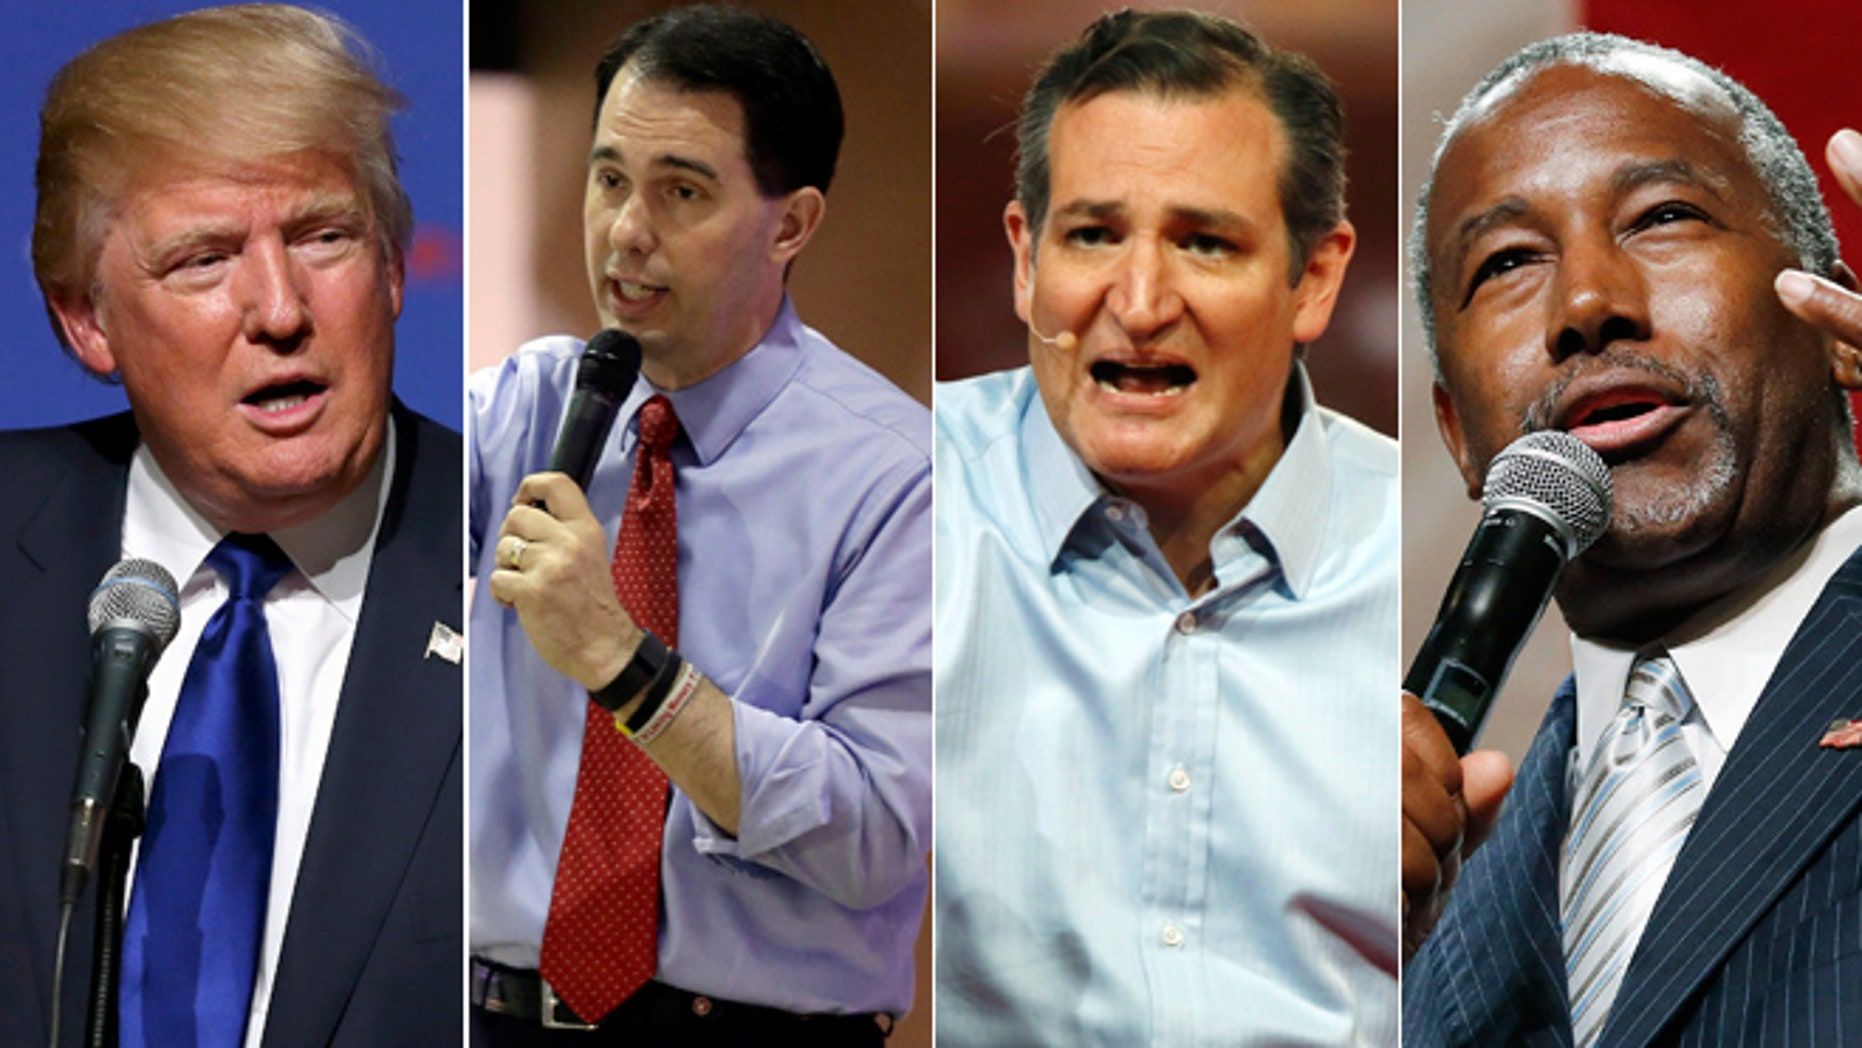 From left: GOP 2016 presidential candidates Donald Trump, Scott Walker, Ted Cruz and Ben Carson. (AP)